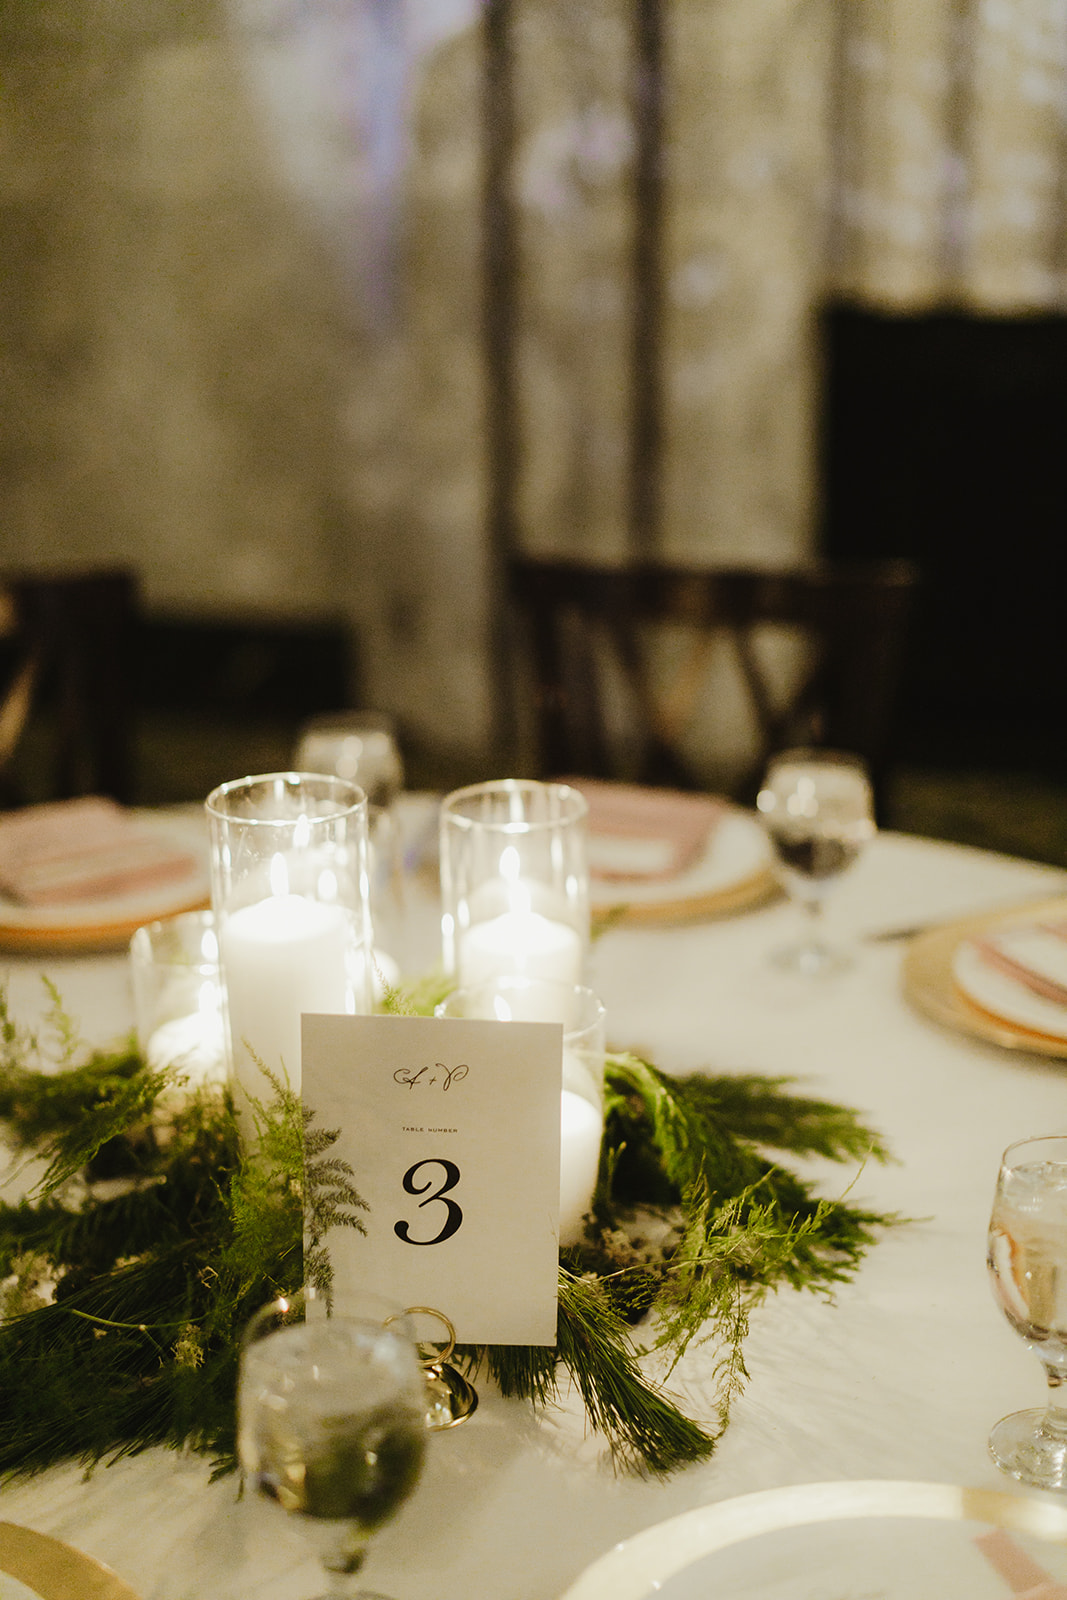 Candles and greenery on a table as wedding decor